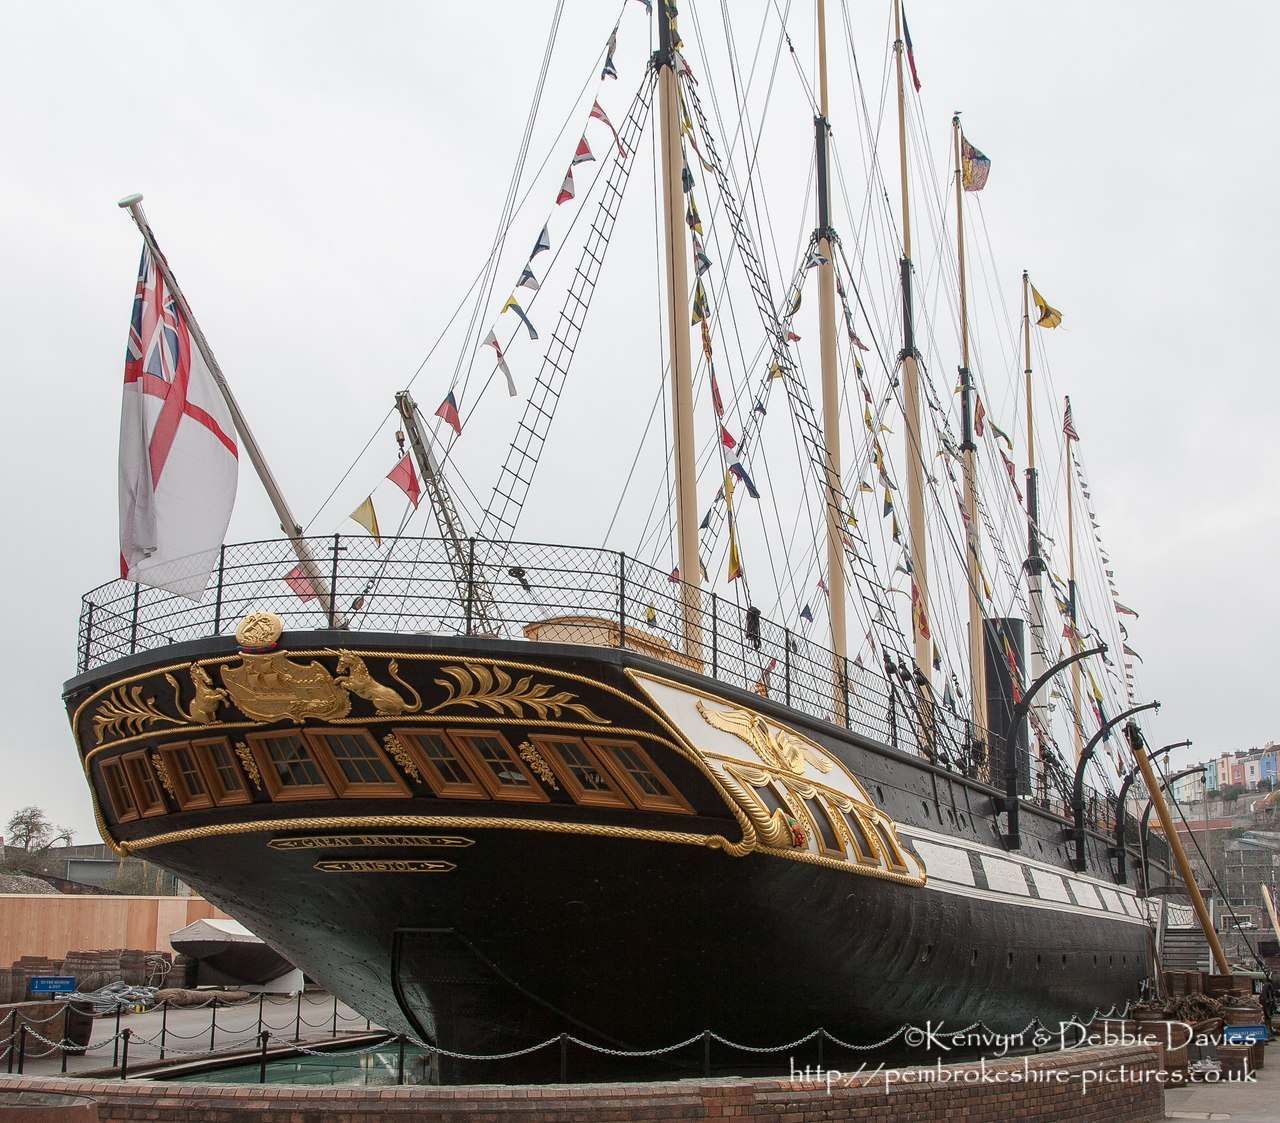 Designed by Isambard Kingdom Brunel and completeted in 1843, The SS Great Britain was - at the time - the larget vessel afloat and the first to feature an iron hull and screw propeller and the first steam ship to cross the Atlantic. She now lies as a museum in the same dry dock in the Great Western Dockyard in which she was built.